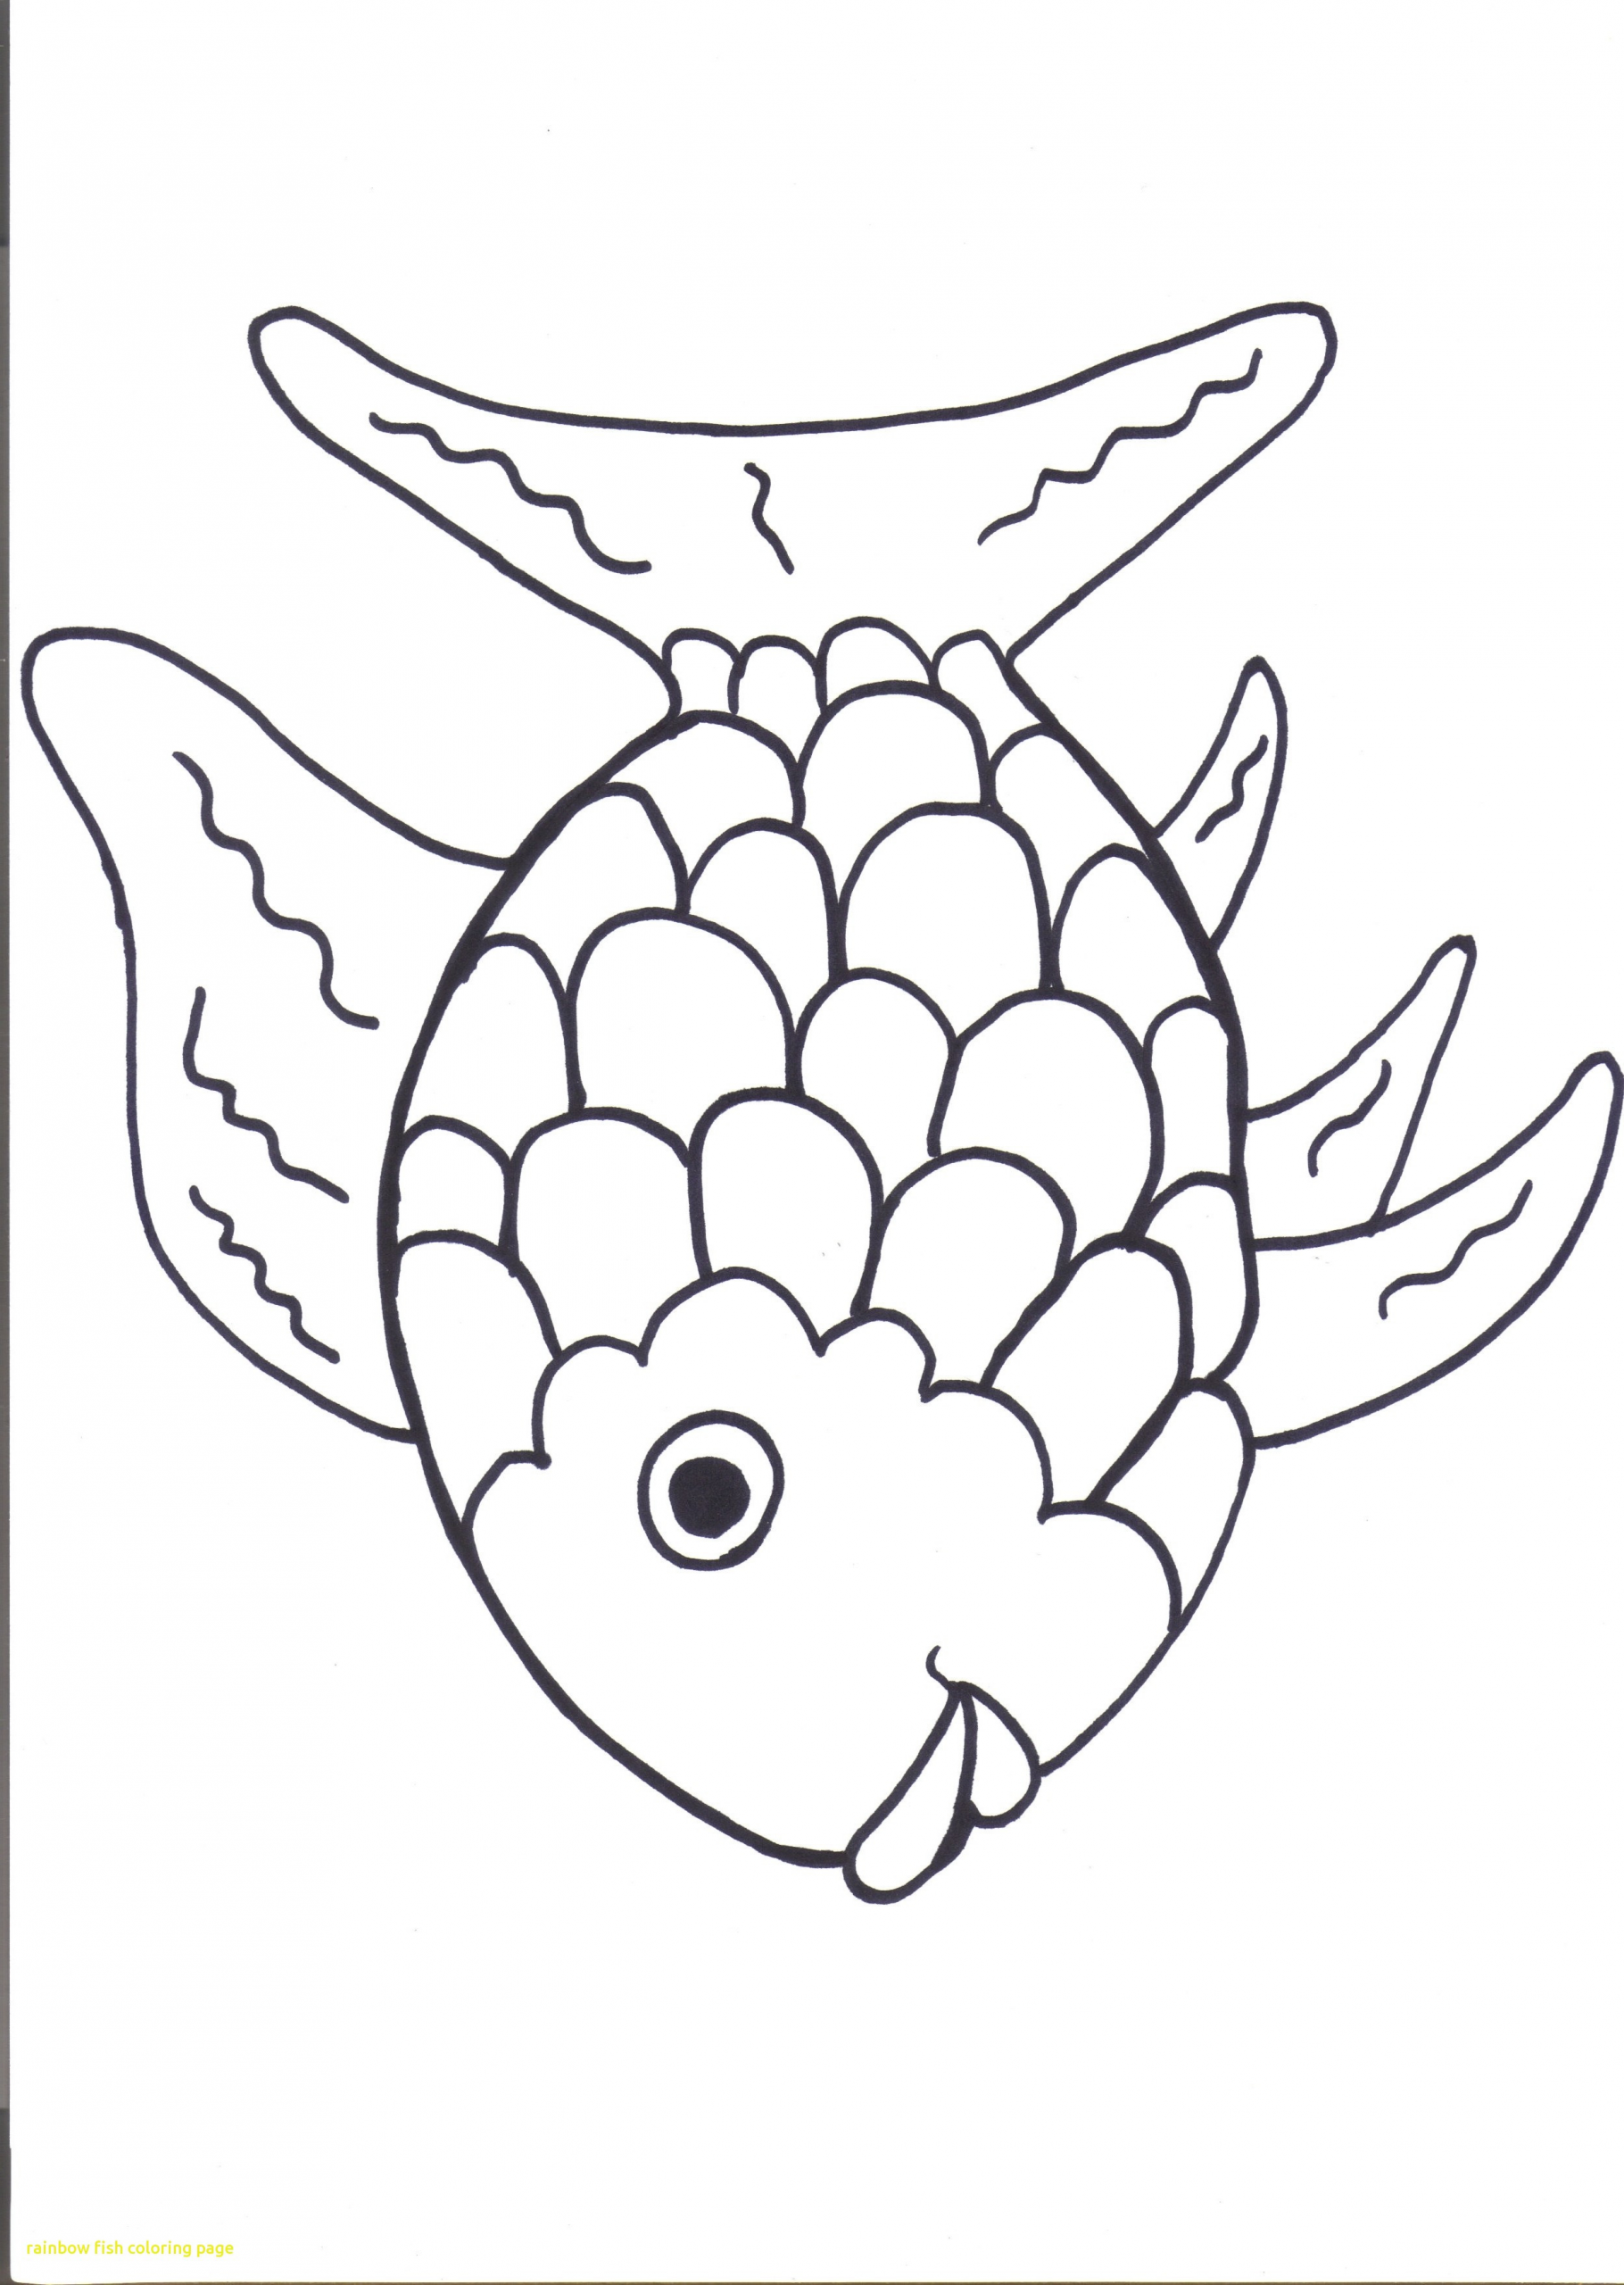 Under The Sea Animal Rainbow Fish Coloring Pages Fish Cartoon Drawing Rainbow Fish Coloring Page Fish Coloring Page